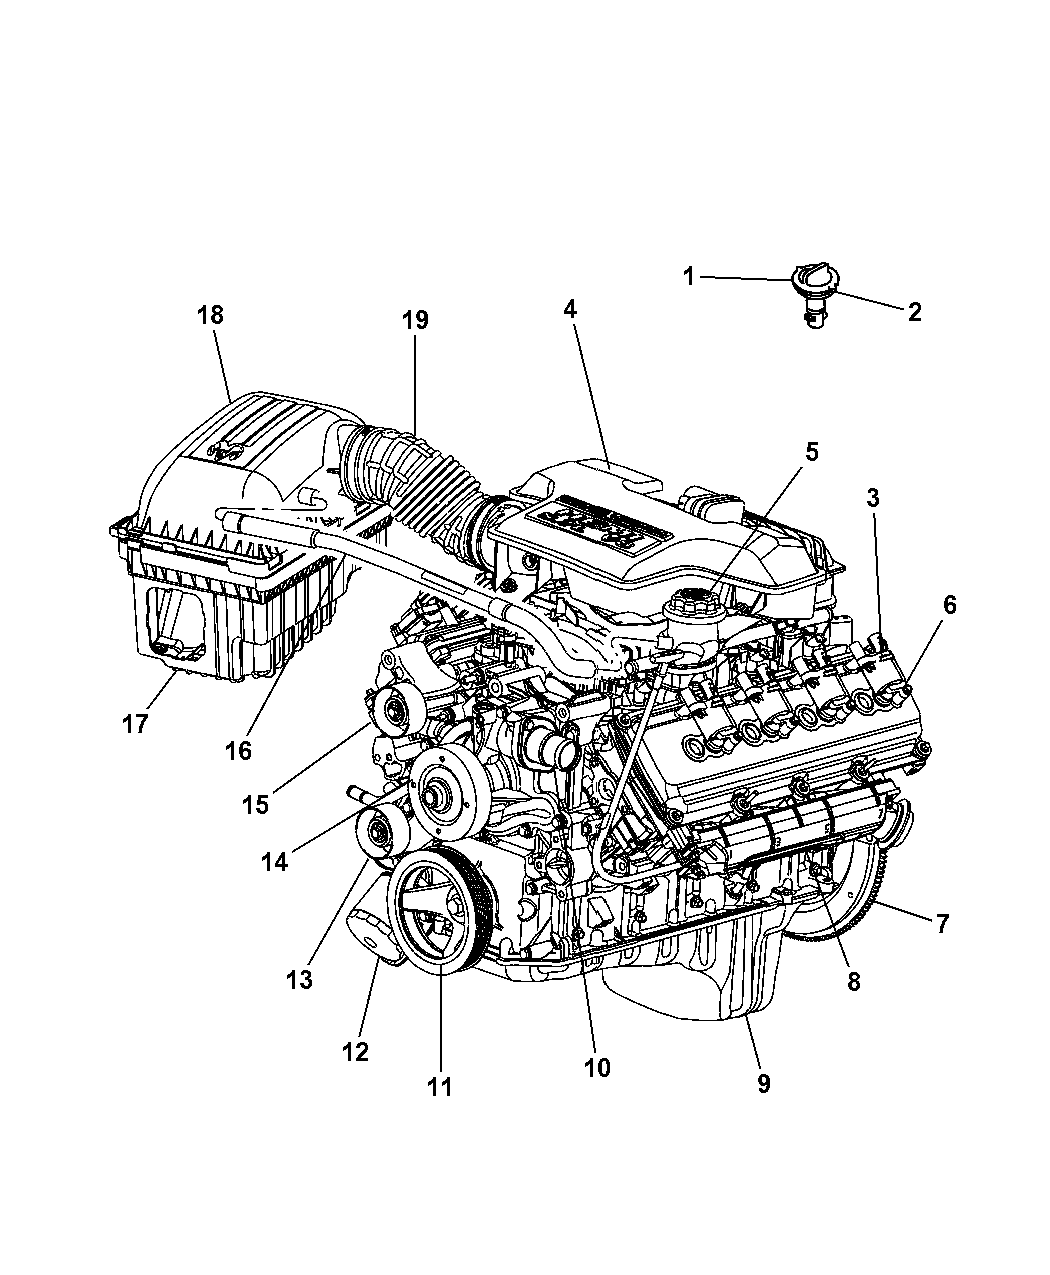 2008 Dodge Ram 1500 Engine Diagram